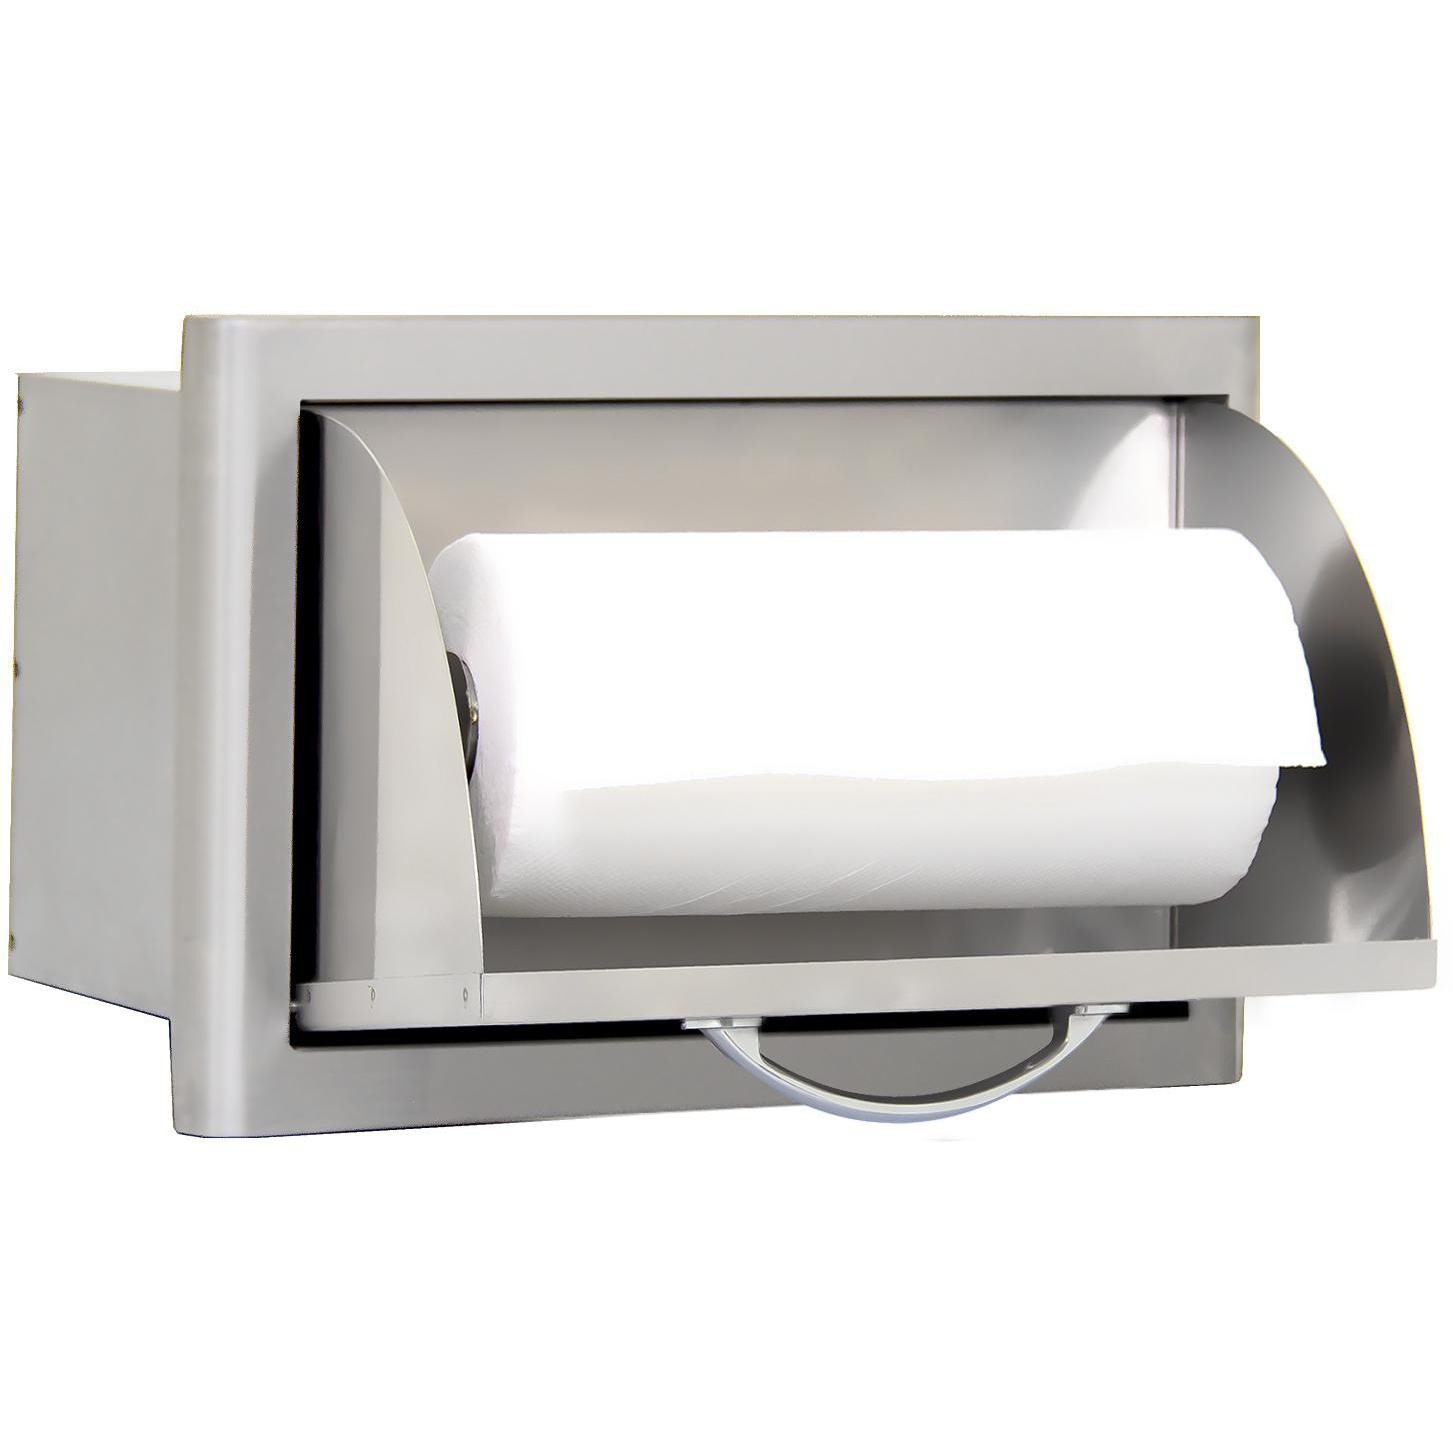 Kitchenaid paper towel holder photo - 2